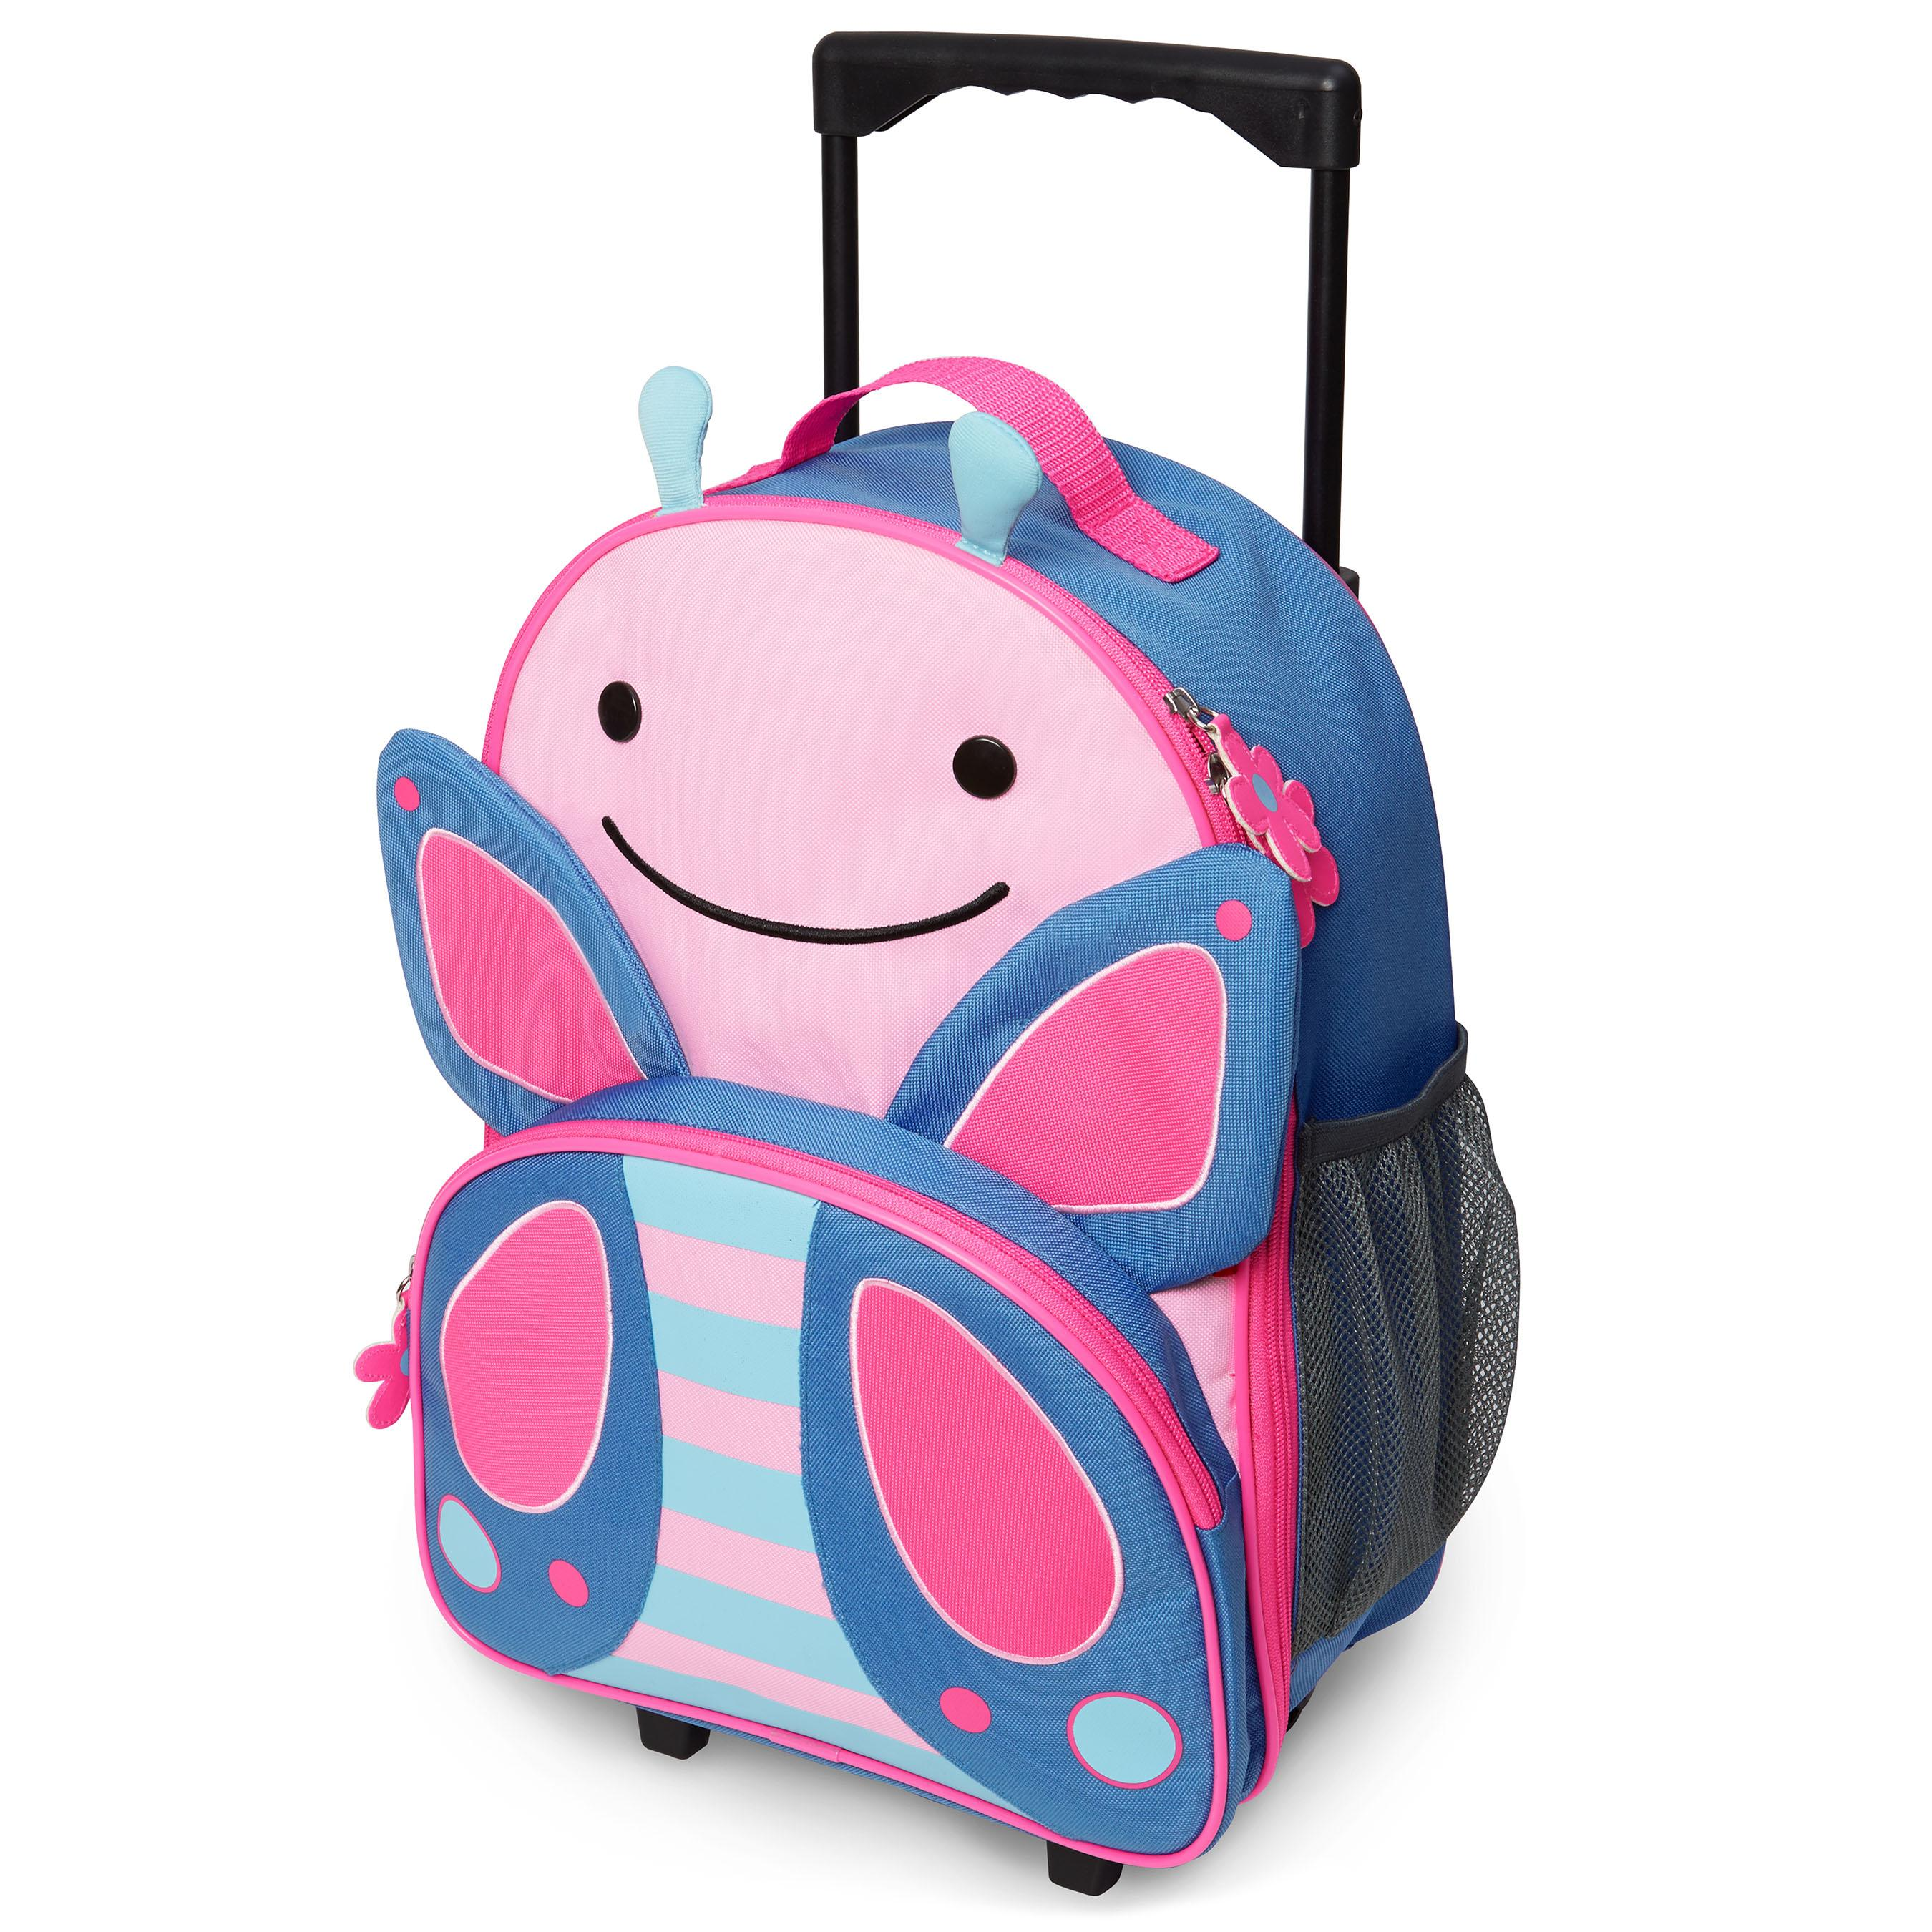 Kids Bags for sale - Kids Luggage Bag online brands, prices ... 355eb7f981